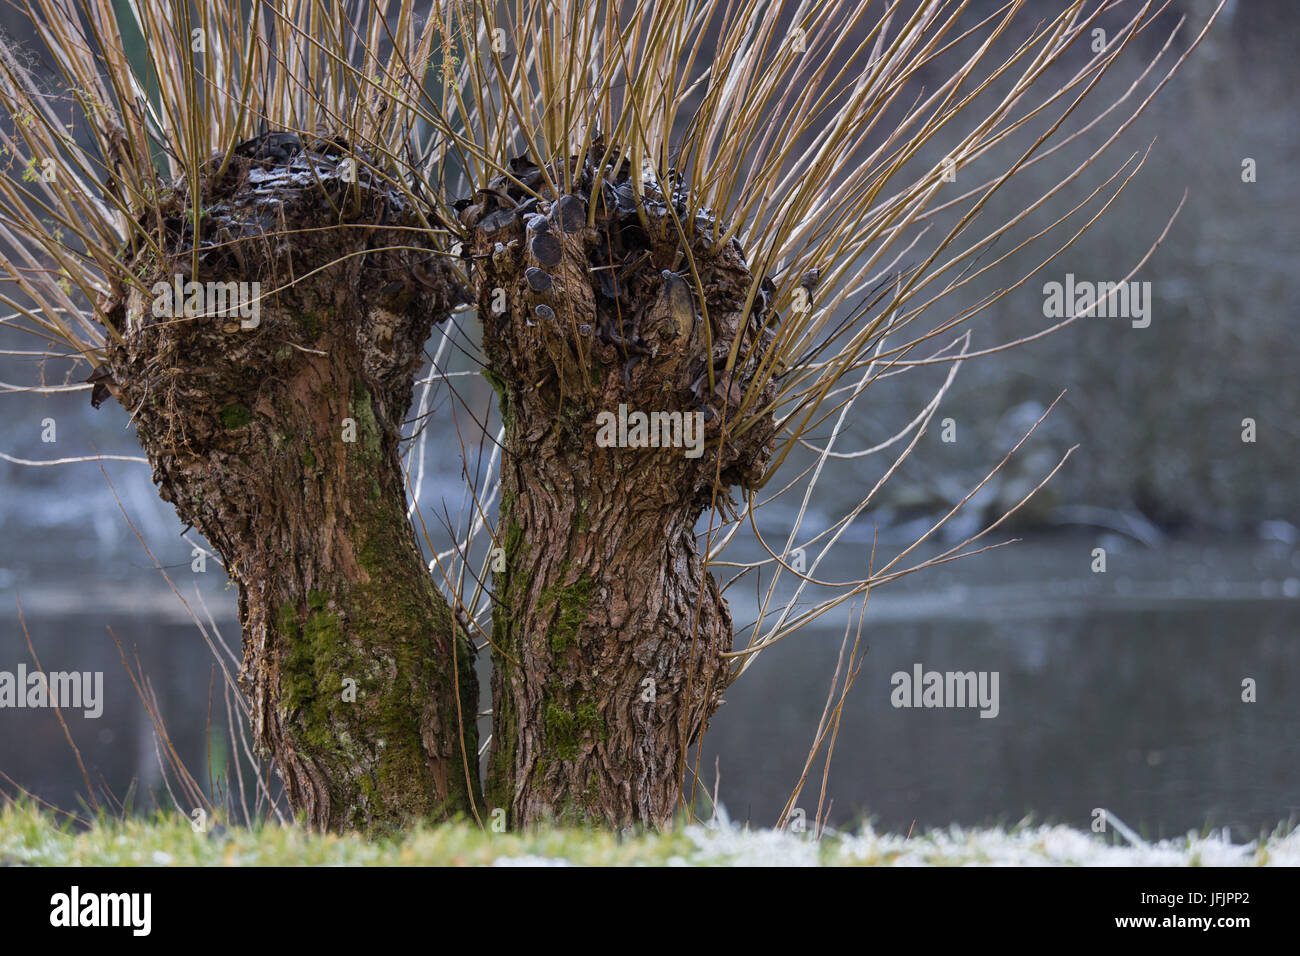 willow tree, with hoarfrost - Stock Image